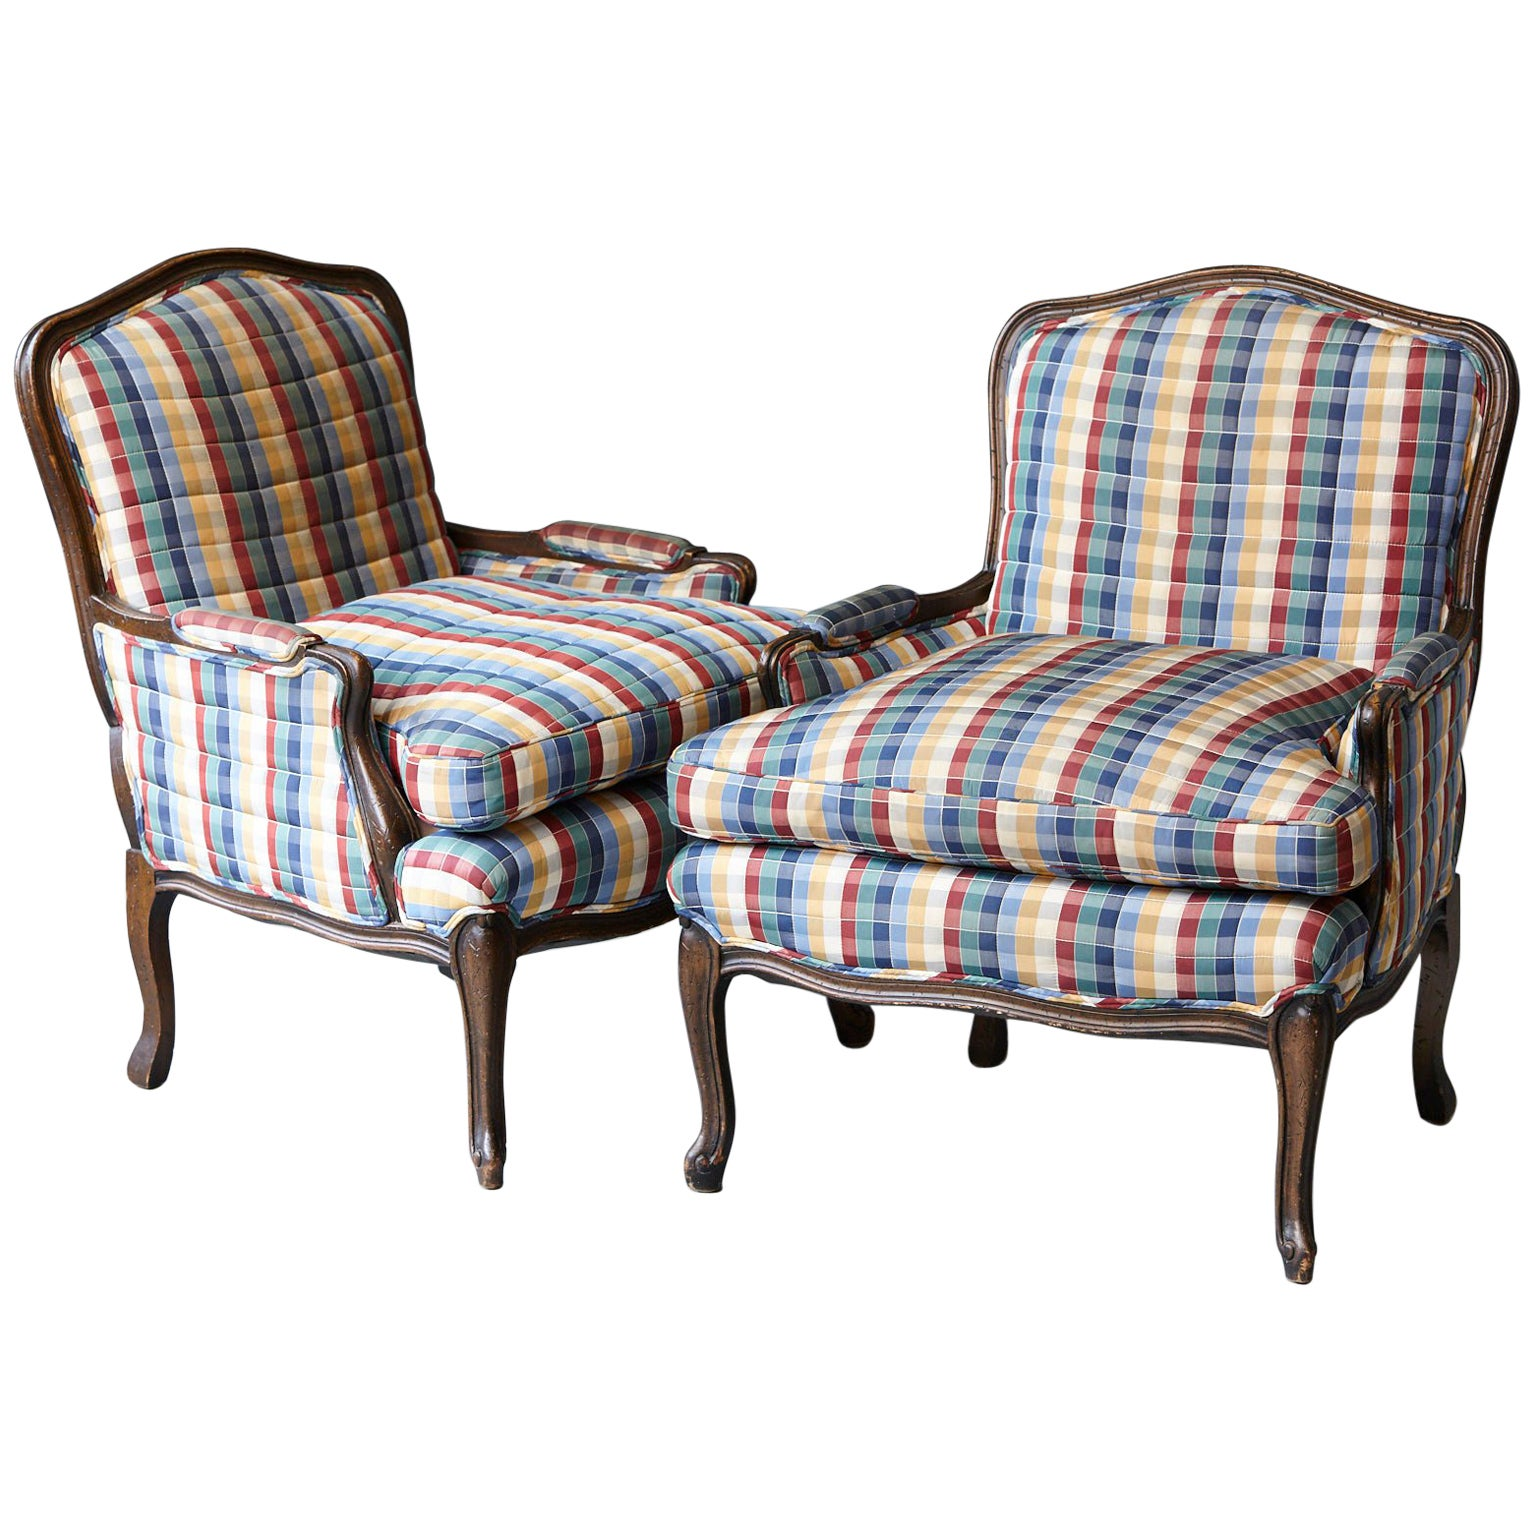 Pair Of French Louis Xv Style Painted Bergere Chairs With